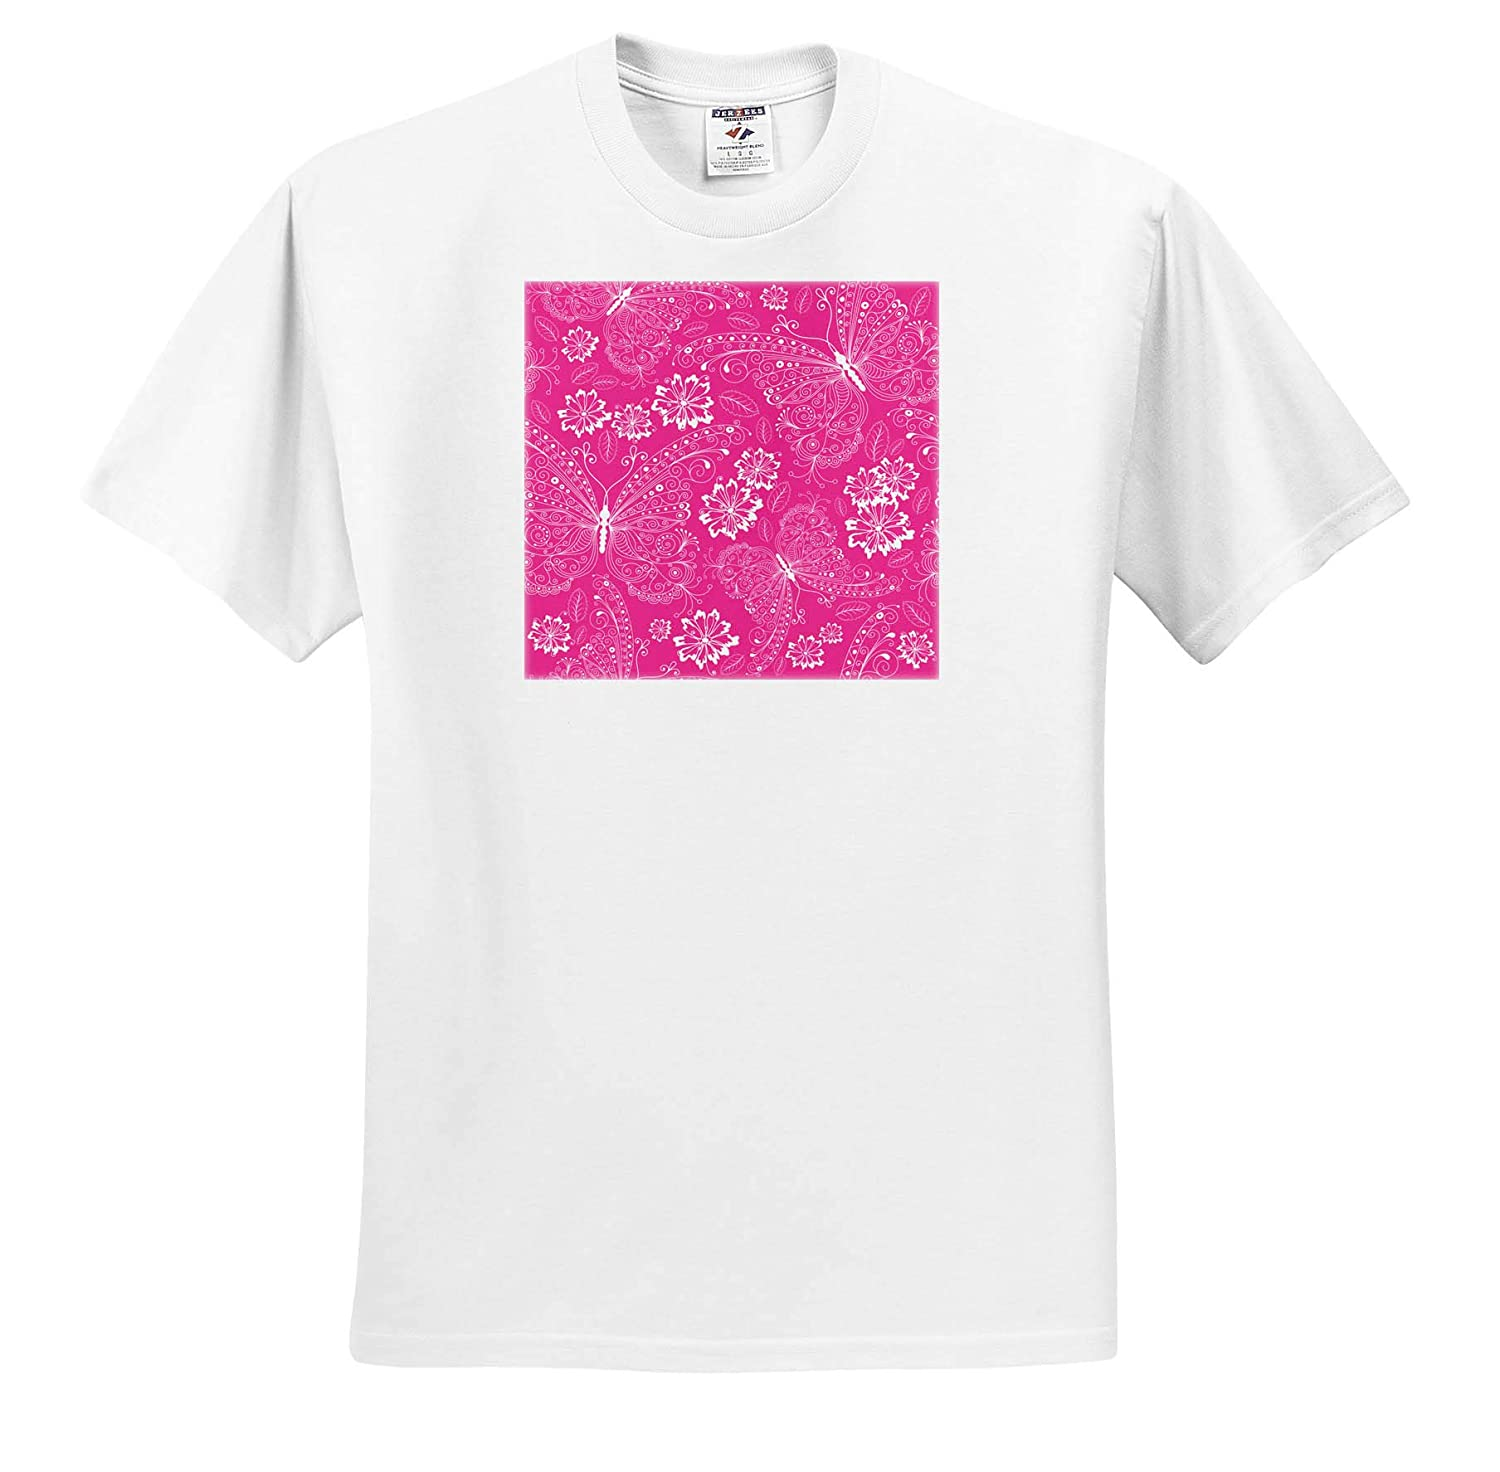 Adult T-Shirt XL 3dRose Anne Marie Baugh Patterns Pretty Pink and White Flourish Butterfly Pattern ts/_309389